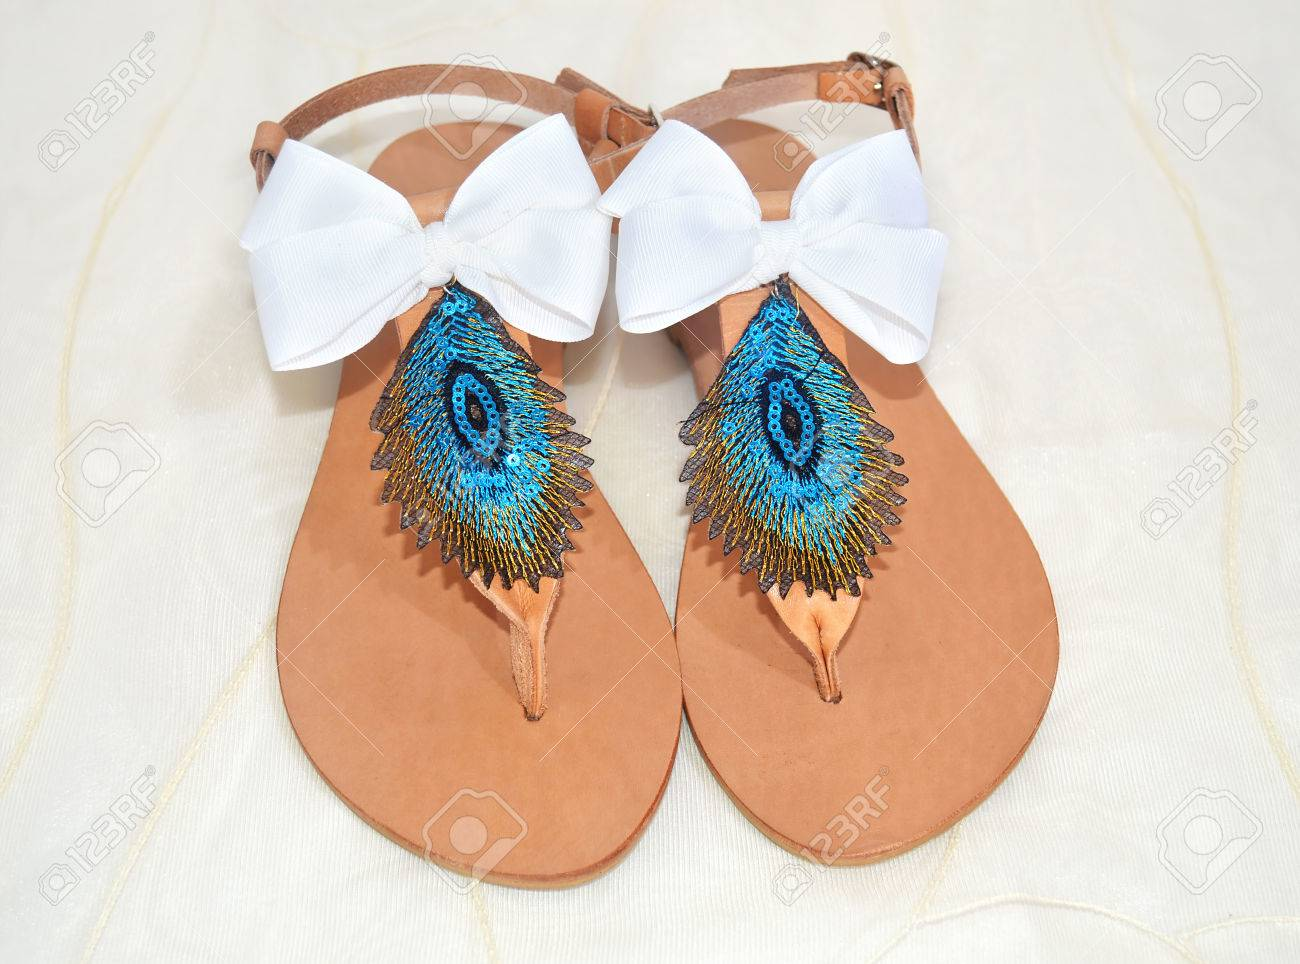 Greek Leather Sandals With Peacock Feather The Symbol Of Goddess